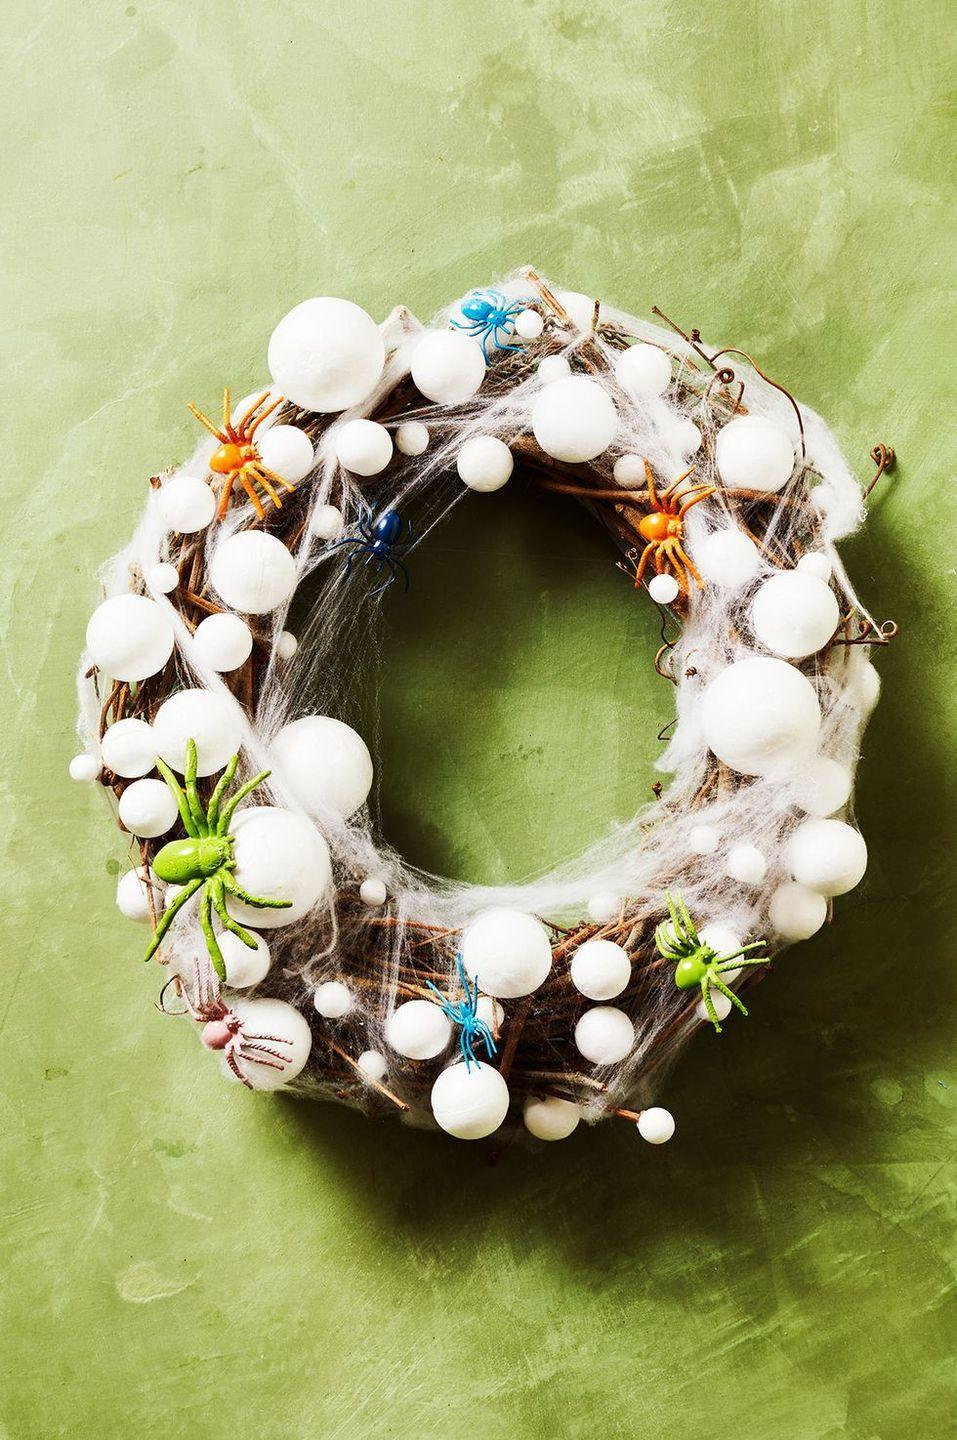 """<p>Here's a DIY project your child wouldn't mind tackling. After spray-painting plastic spiders and Styrofoam balls, attach then to a twig wreath form and finish the look with gauzy spiderweb material. </p><p><a class=""""link rapid-noclick-resp"""" href=""""https://www.amazon.com/Muzboo-Realistic-Plastic-Halloween-Decorations/dp/B07CVJ3LBN?tag=syn-yahoo-20&ascsubtag=%5Bartid%7C10055.g.4602%5Bsrc%7Cyahoo-us"""" rel=""""nofollow noopener"""" target=""""_blank"""" data-ylk=""""slk:SHOP FAKE SPIDERS"""">SHOP FAKE SPIDERS </a></p>"""